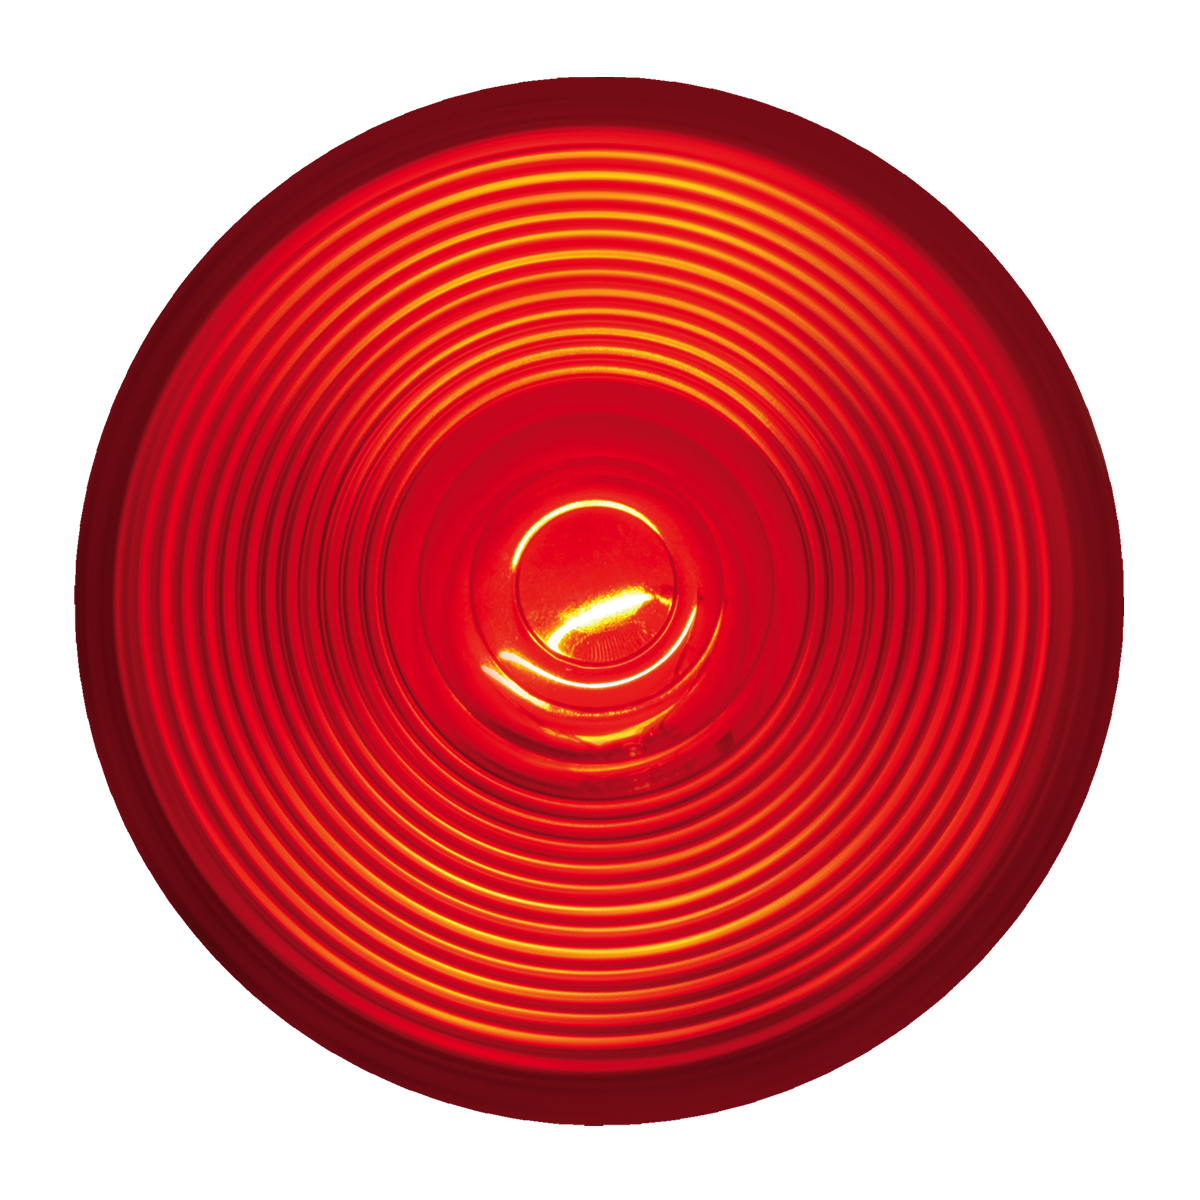 "#80471 4"" Round Incandescent Flat - Red/Red"